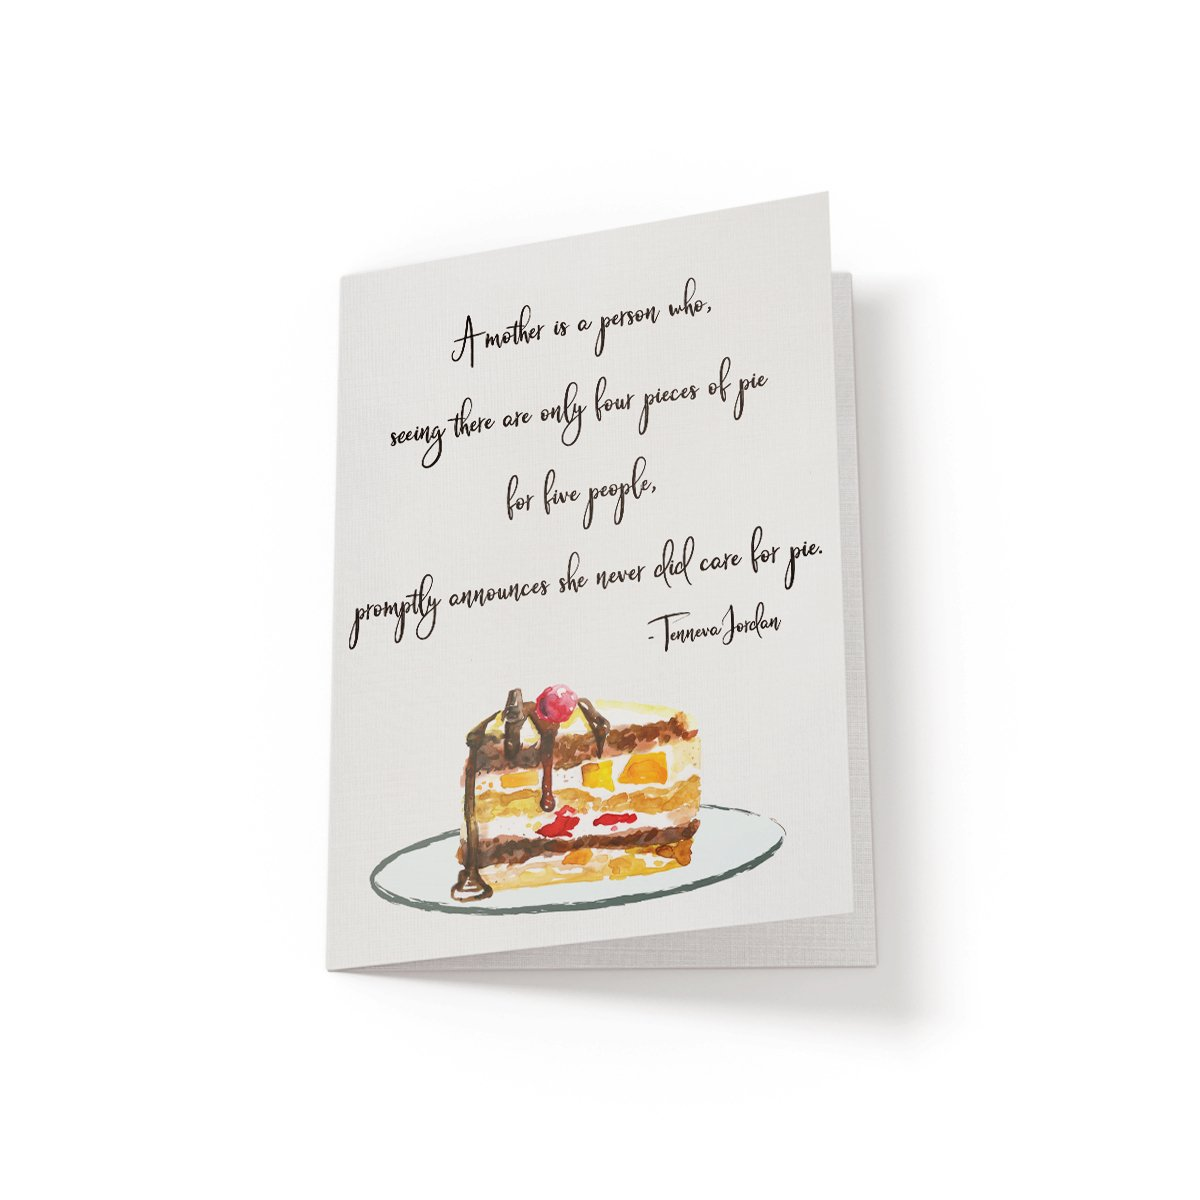 A Mother is a person who - Greeting Card - Netties Expressions